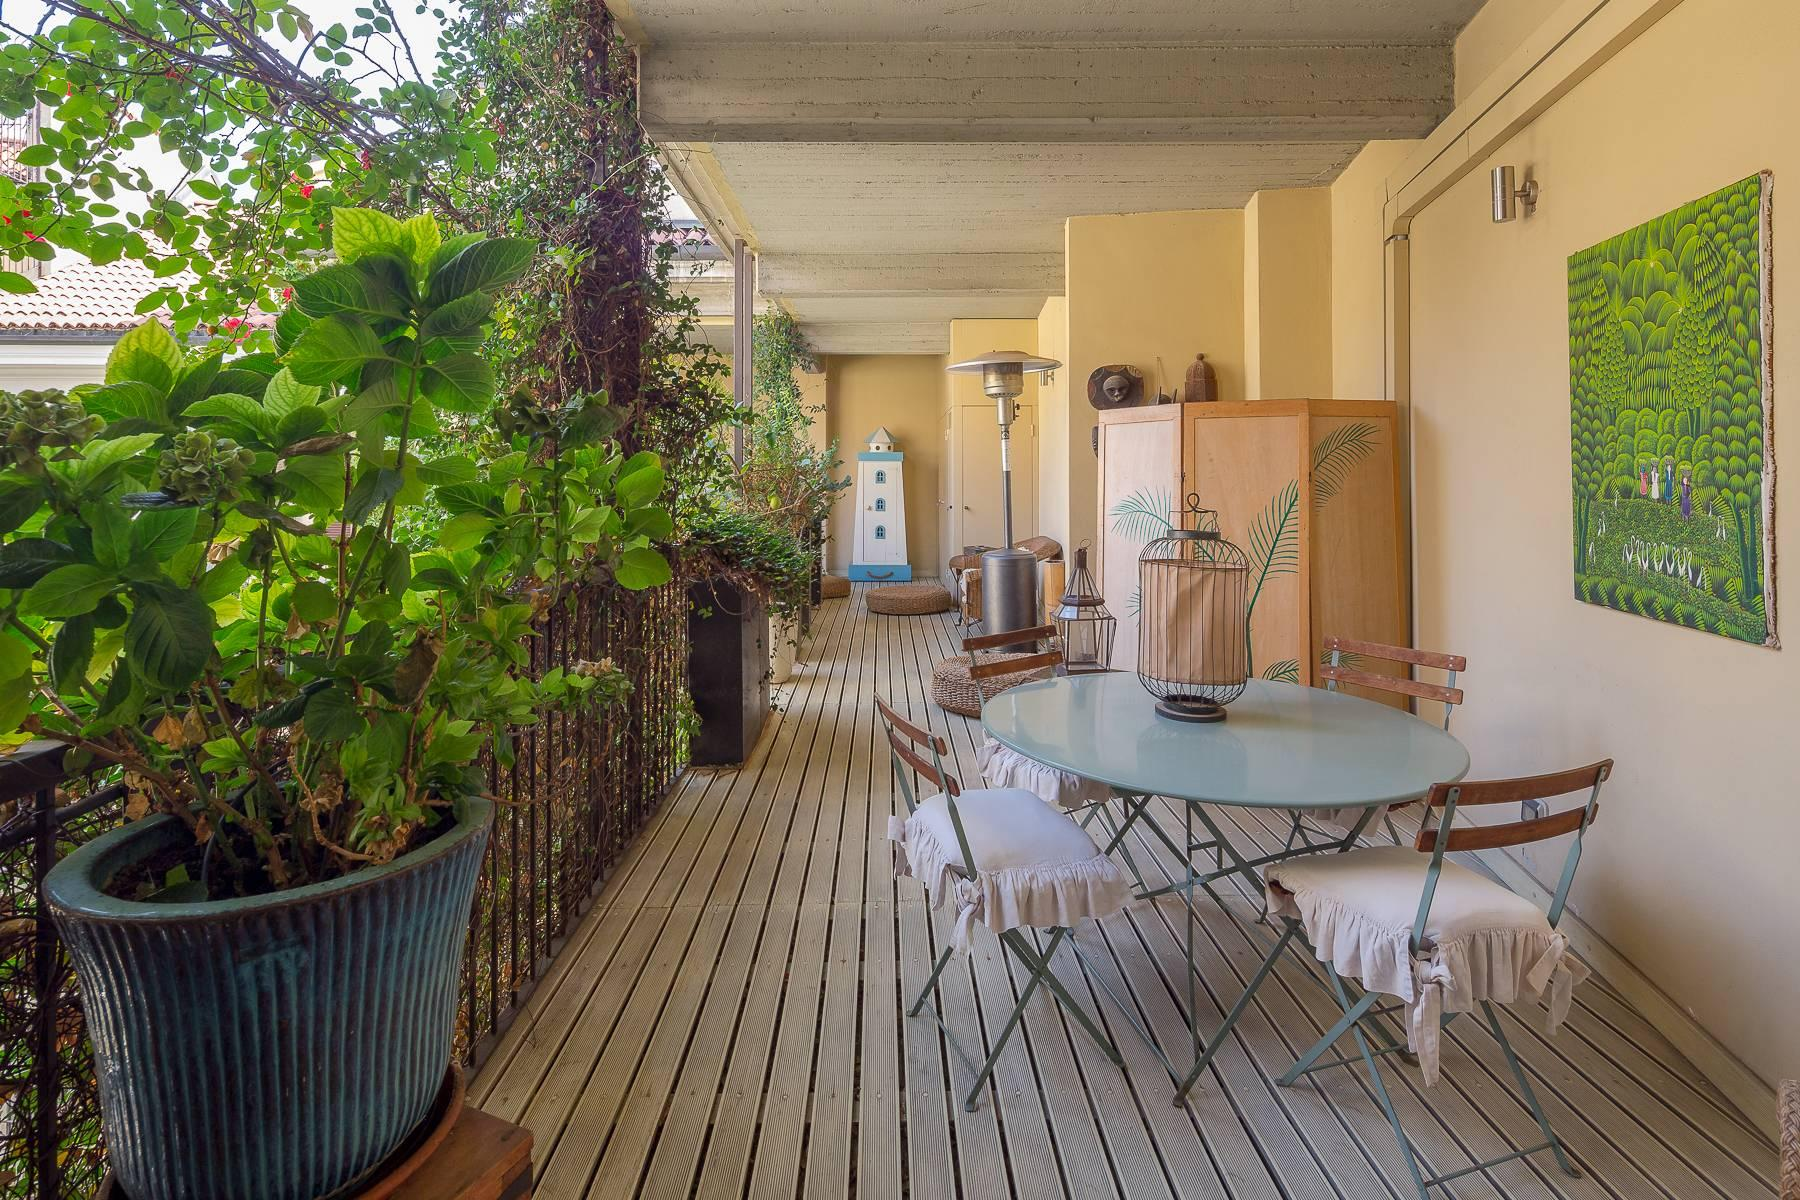 Charming apartment in one of the most exclusive areas of Milan - 30